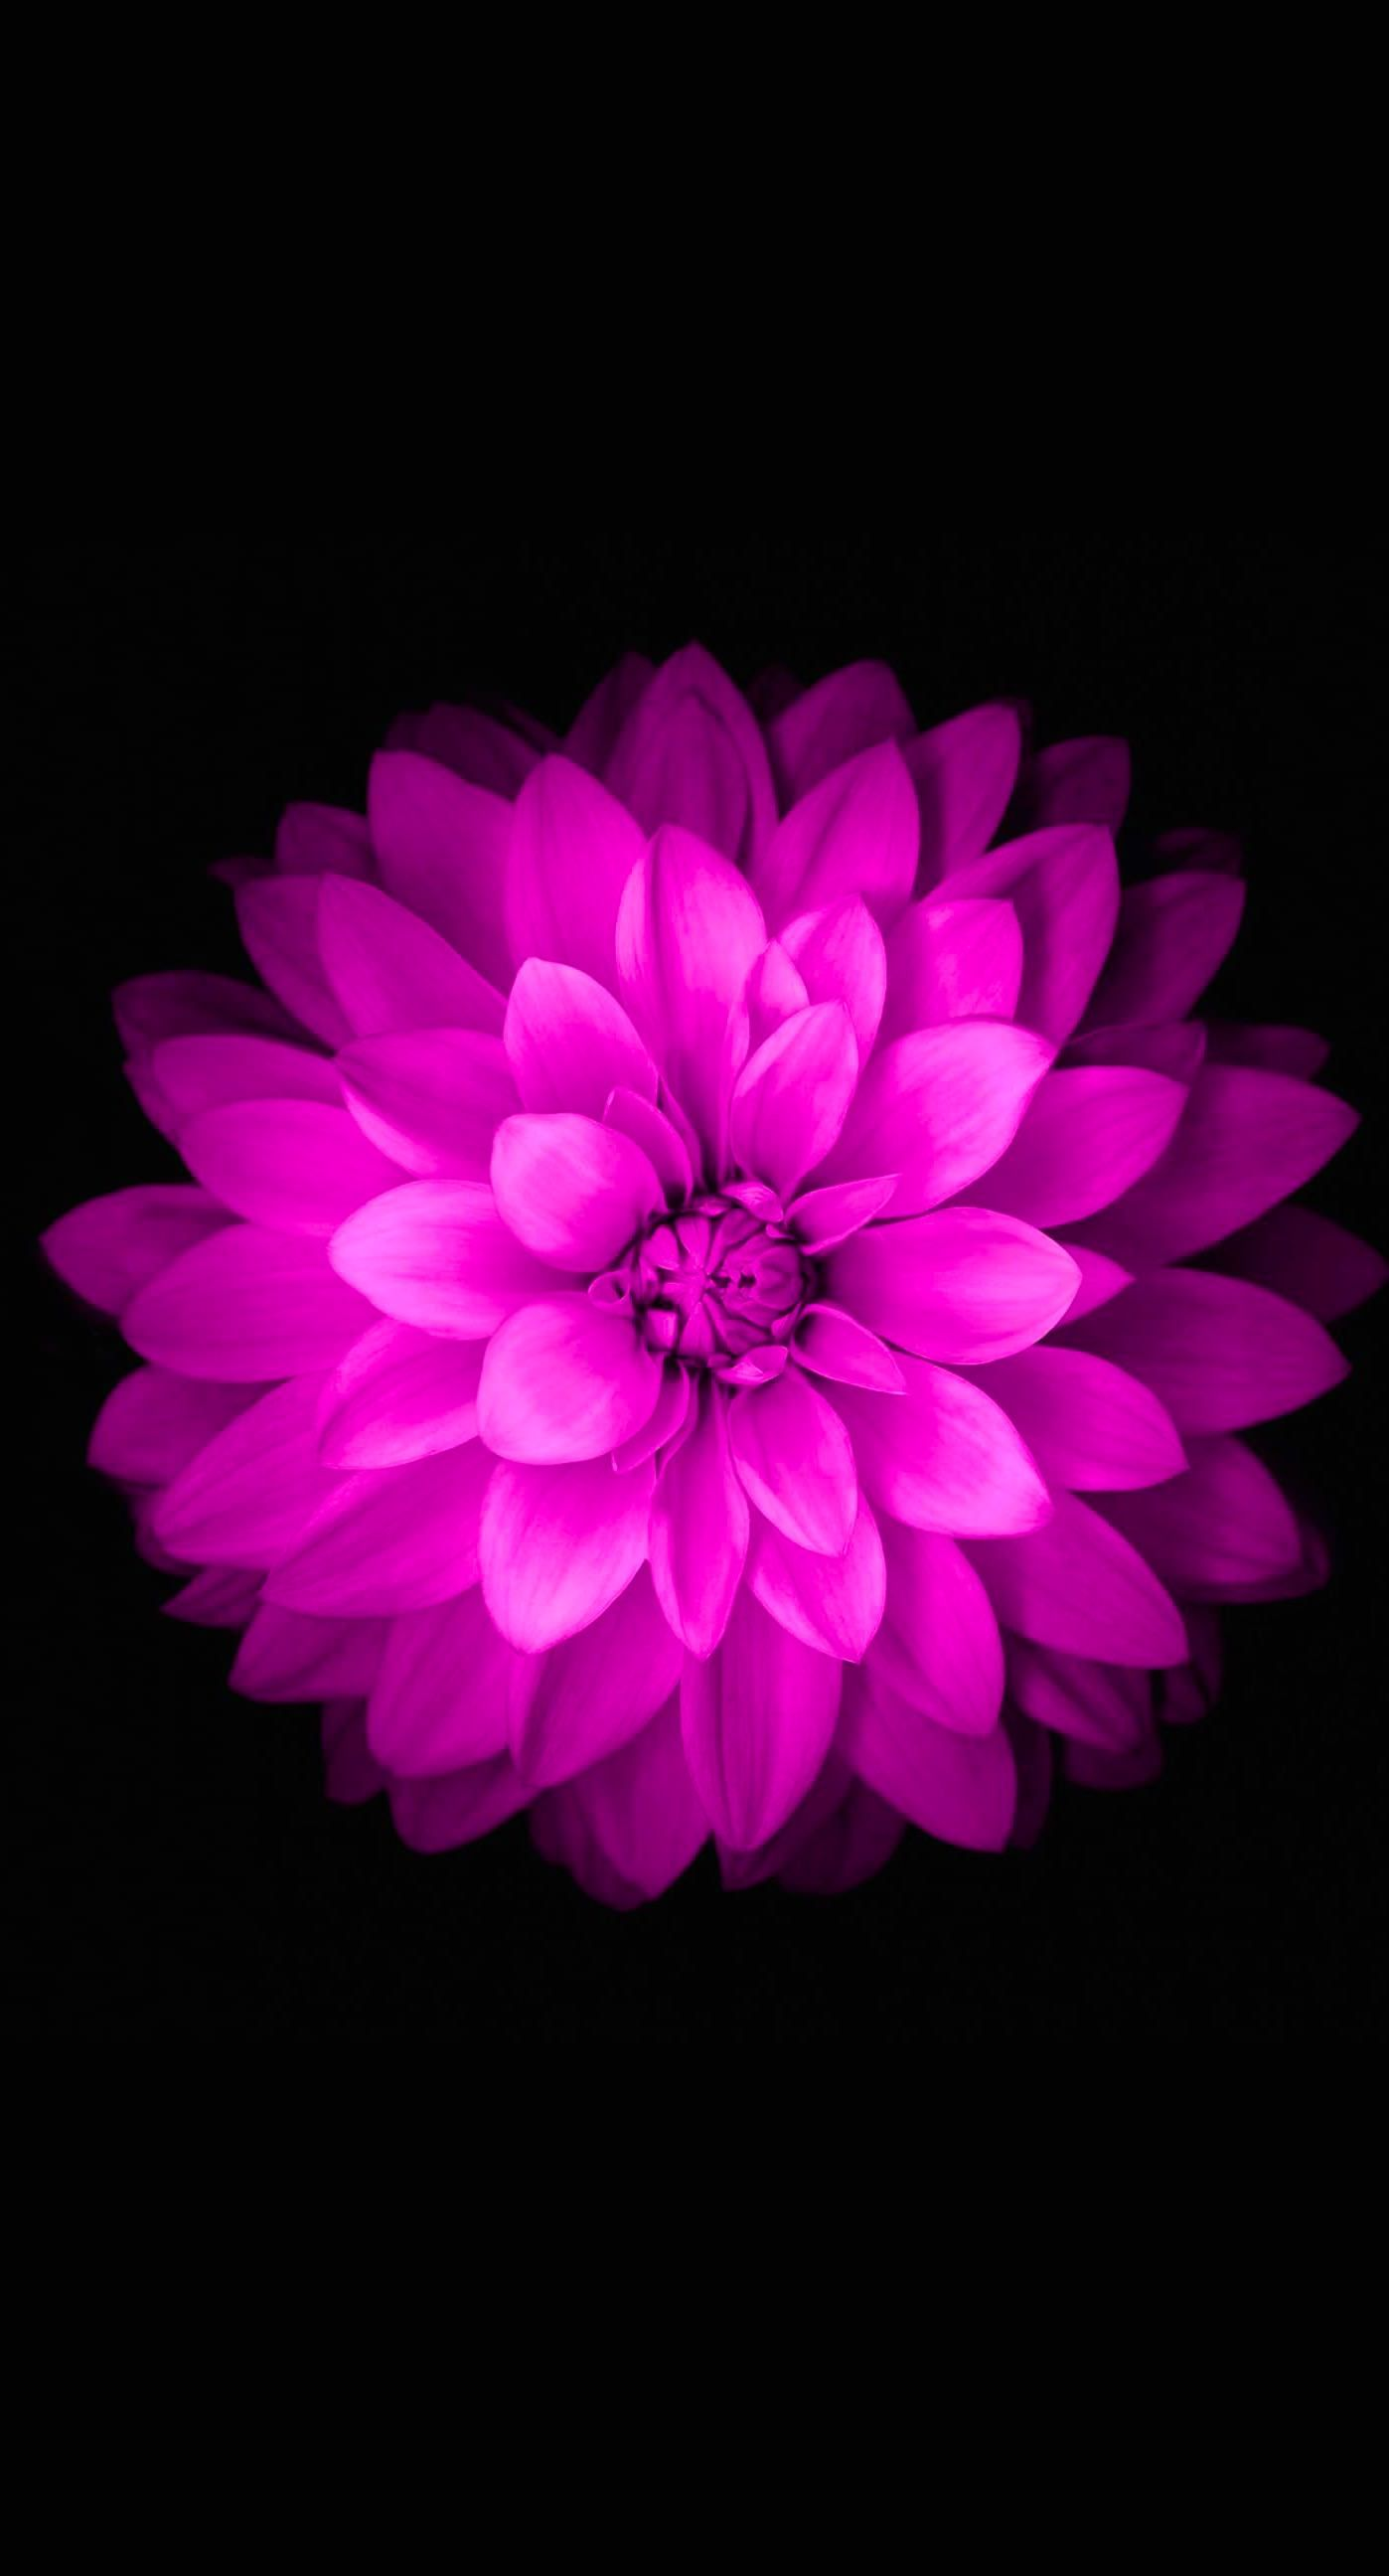 purple flower wallpaper for iphone - wallpapersafari | images